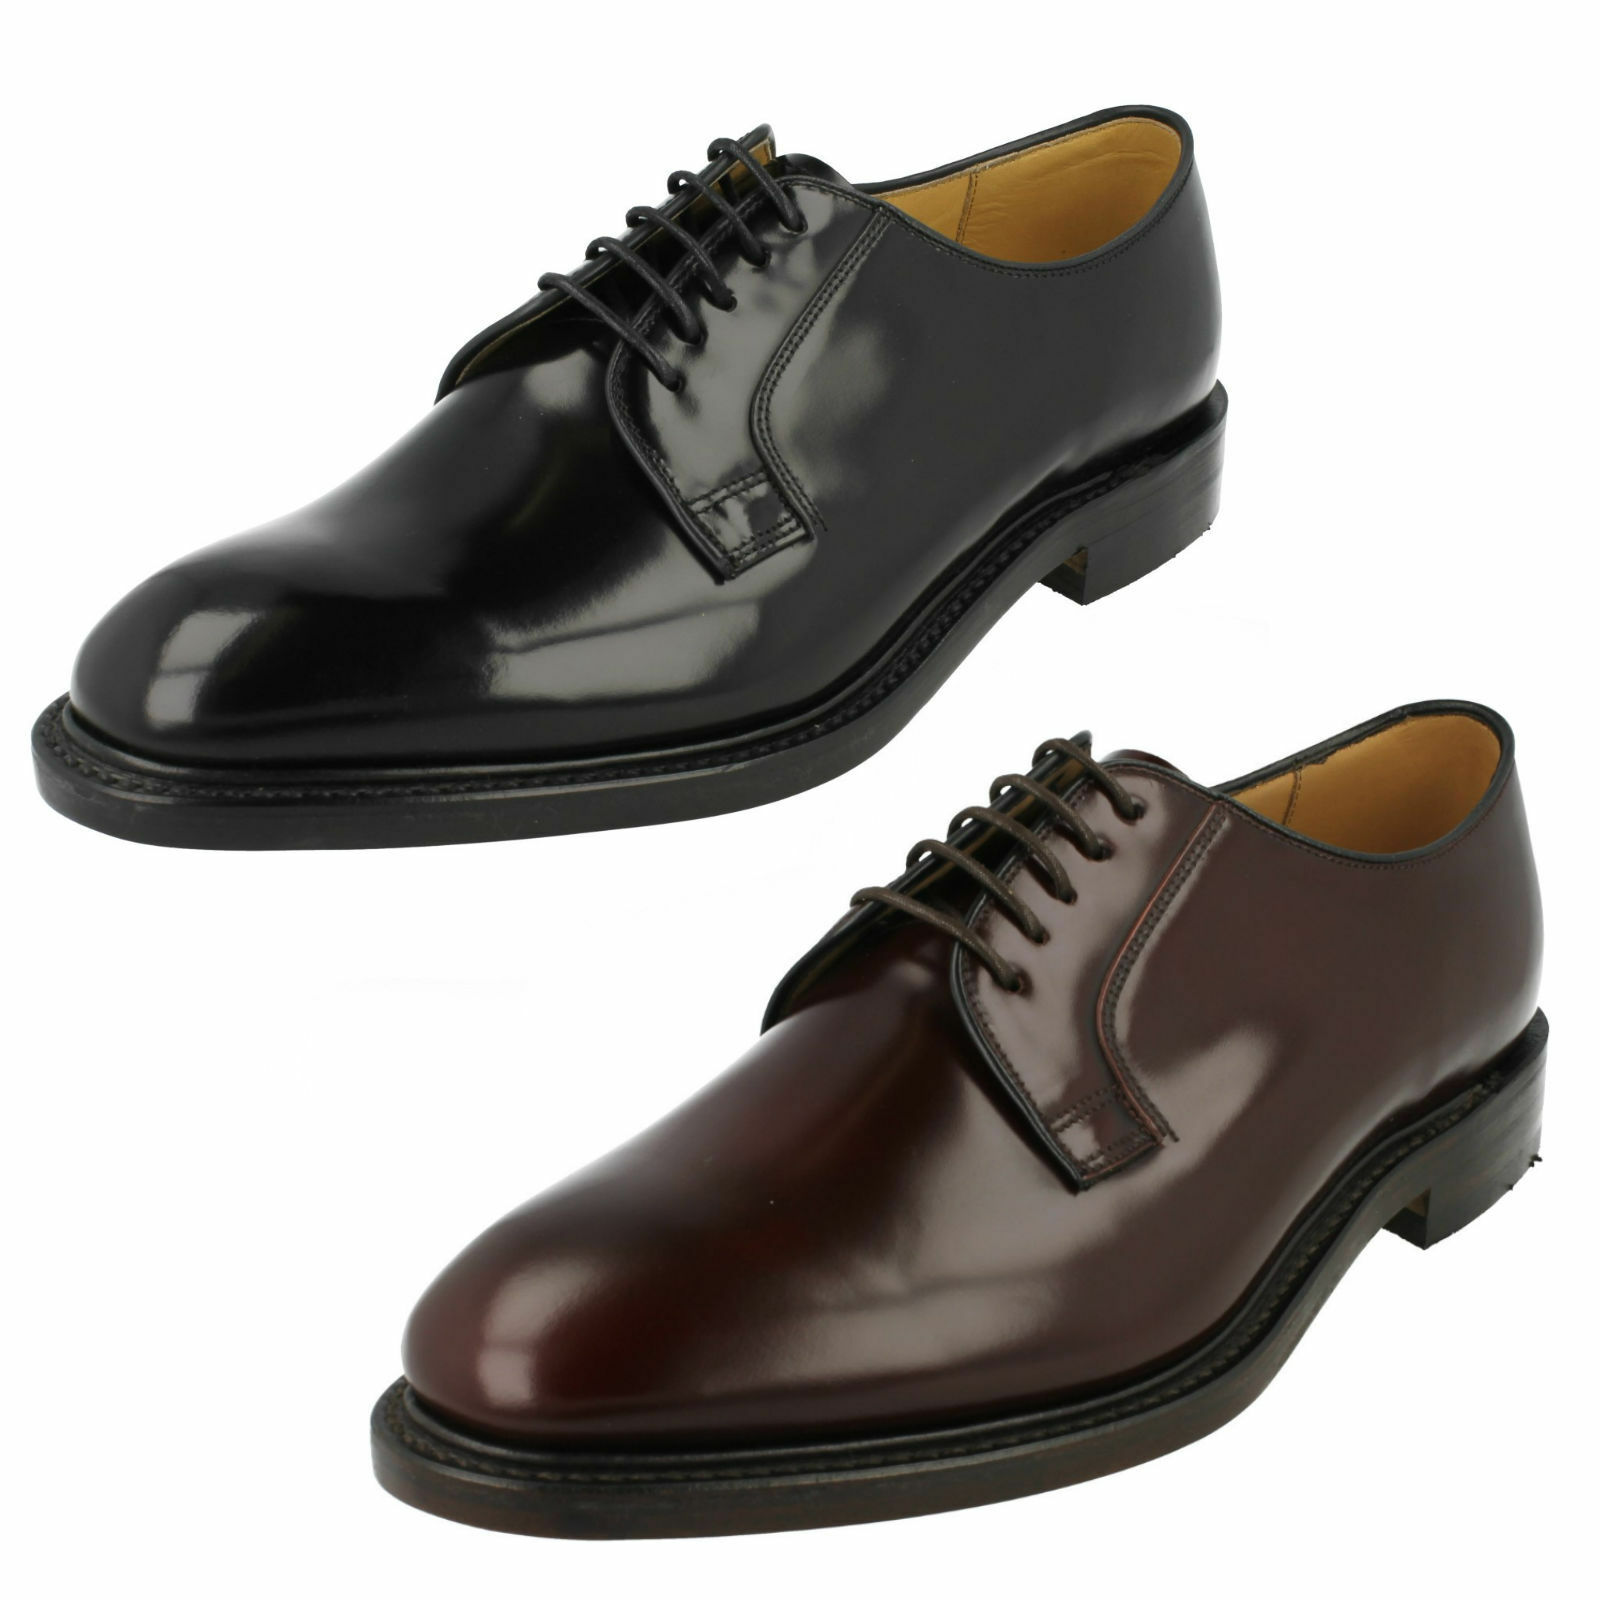 MENS LOAKE 771T 771B POLISHED LEATHER FORMAL GOODYEAR WELTED SOLE DERBY schuhe